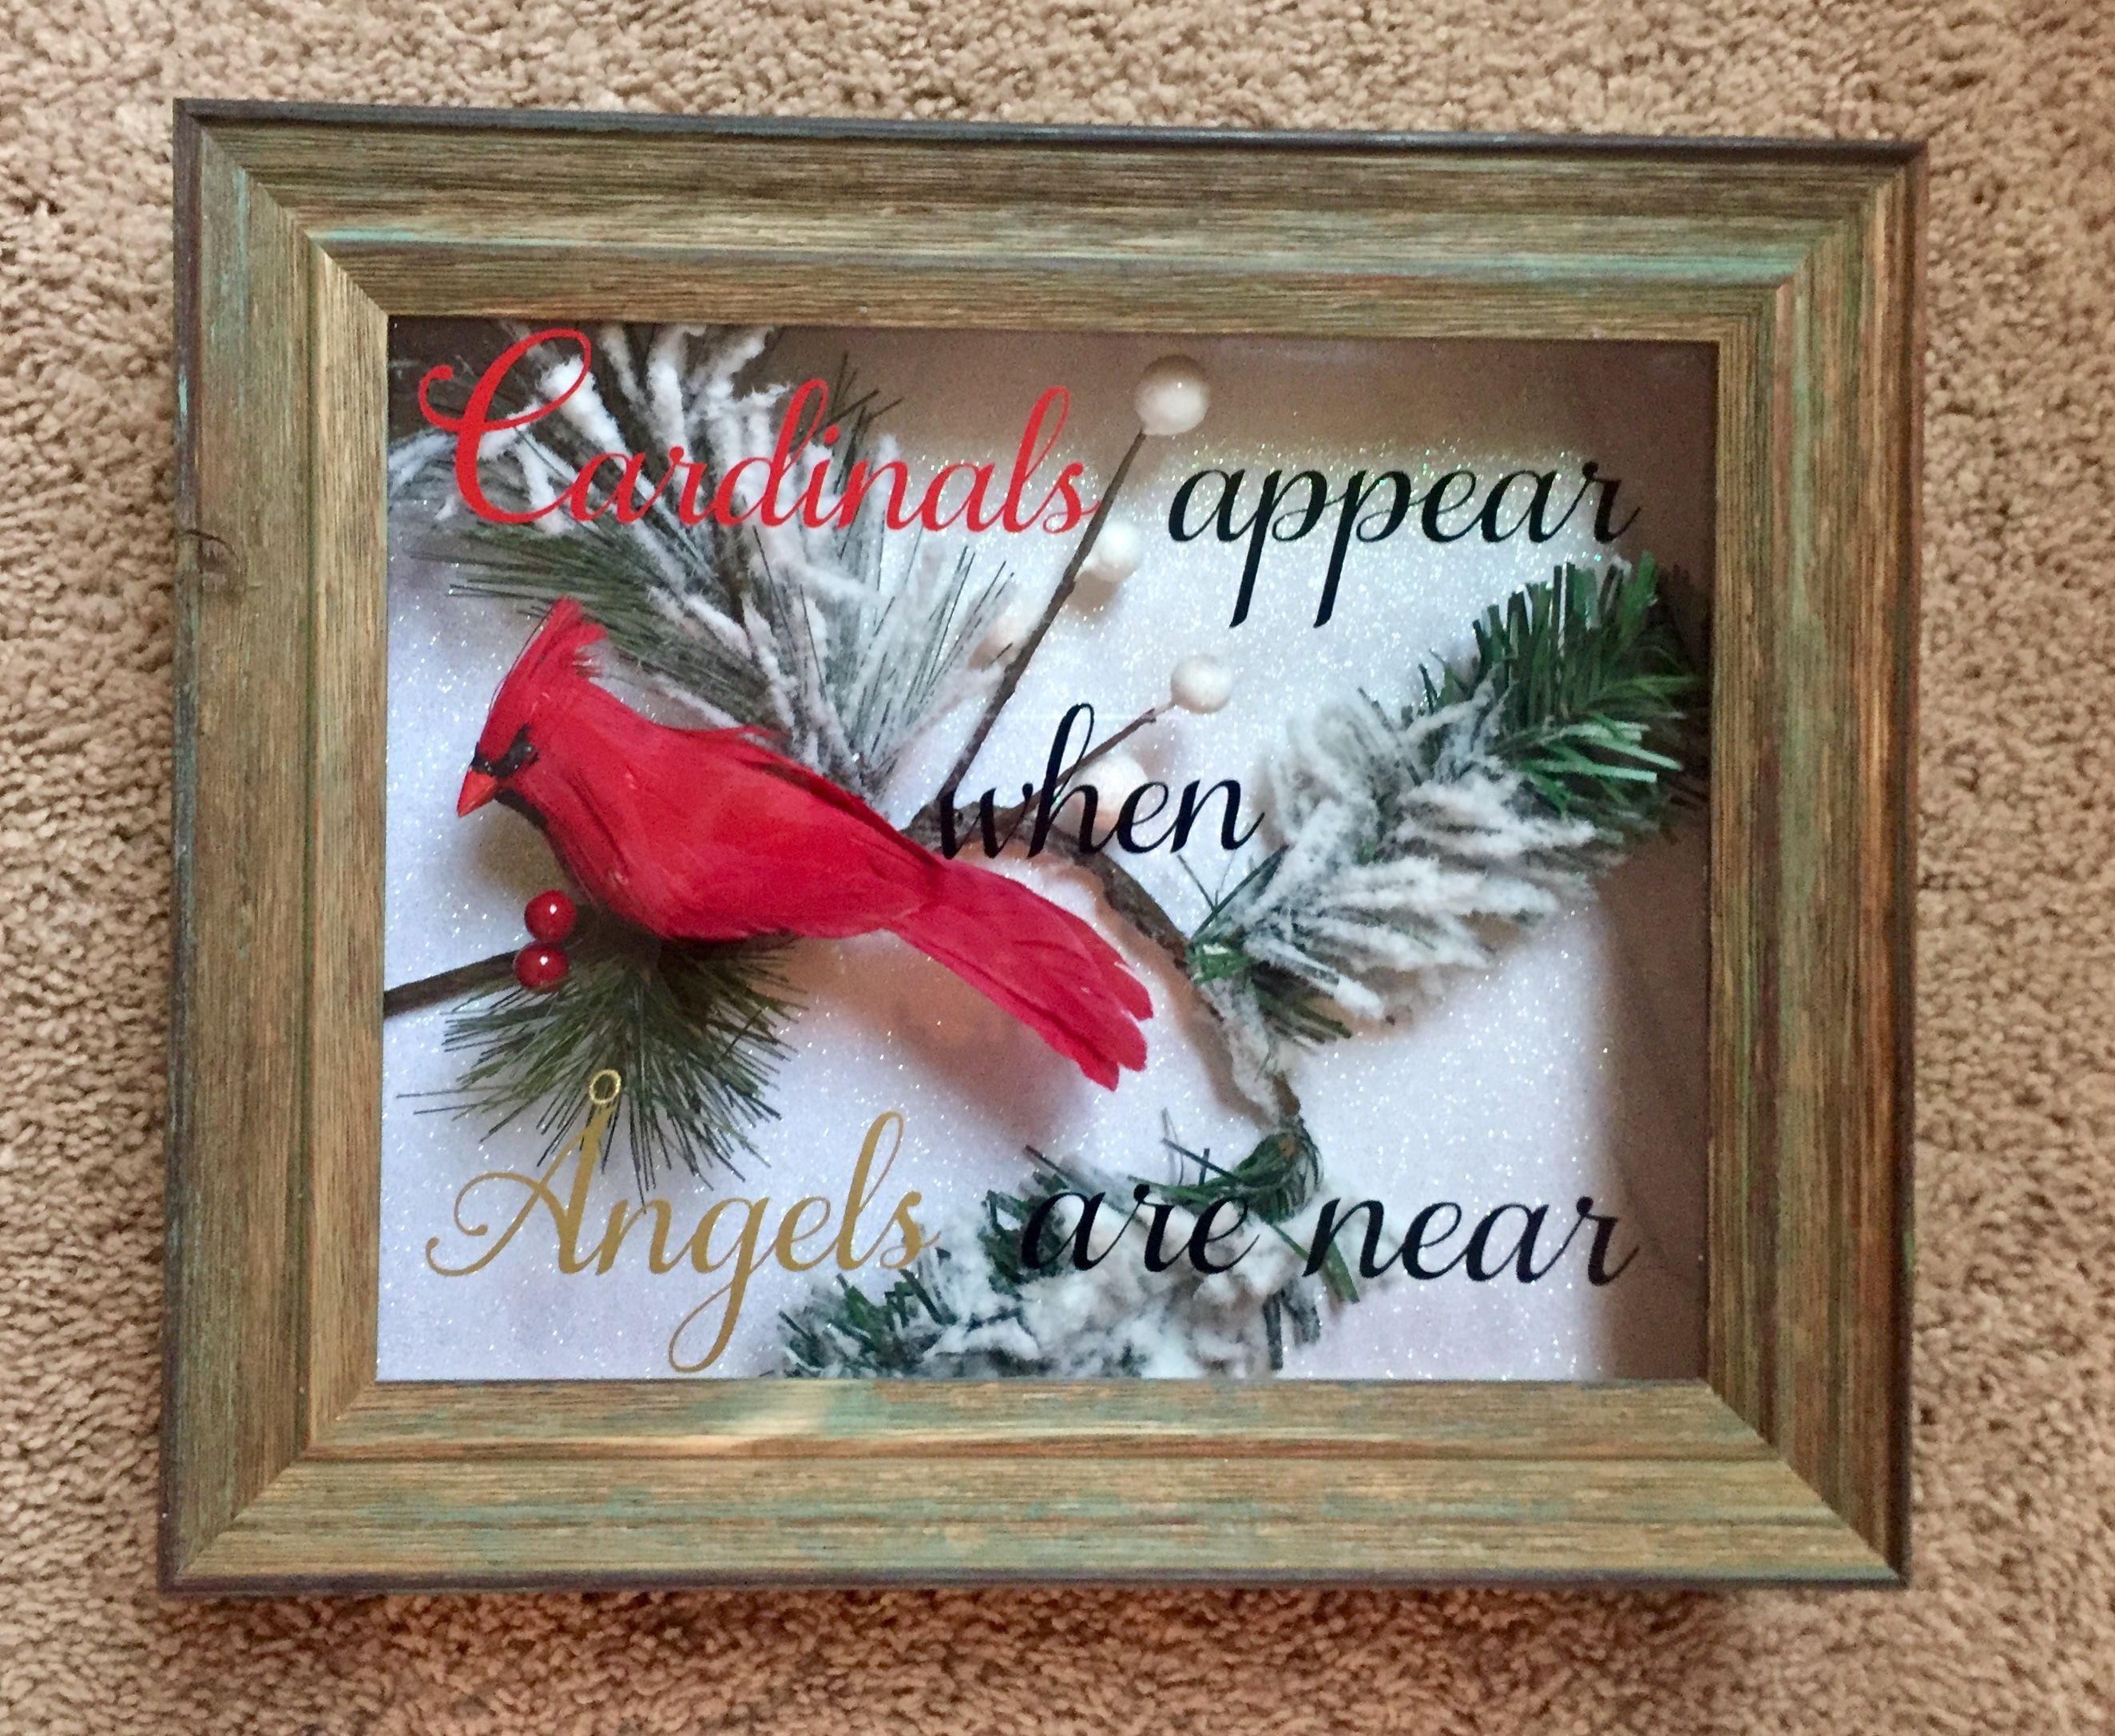 Shadowbox Cardinals Appear When Angels Are Near I Used Glitter Card Stock For The Background Christmas Shadow Boxes Diy Christmas Shadow Box Christmas Diy